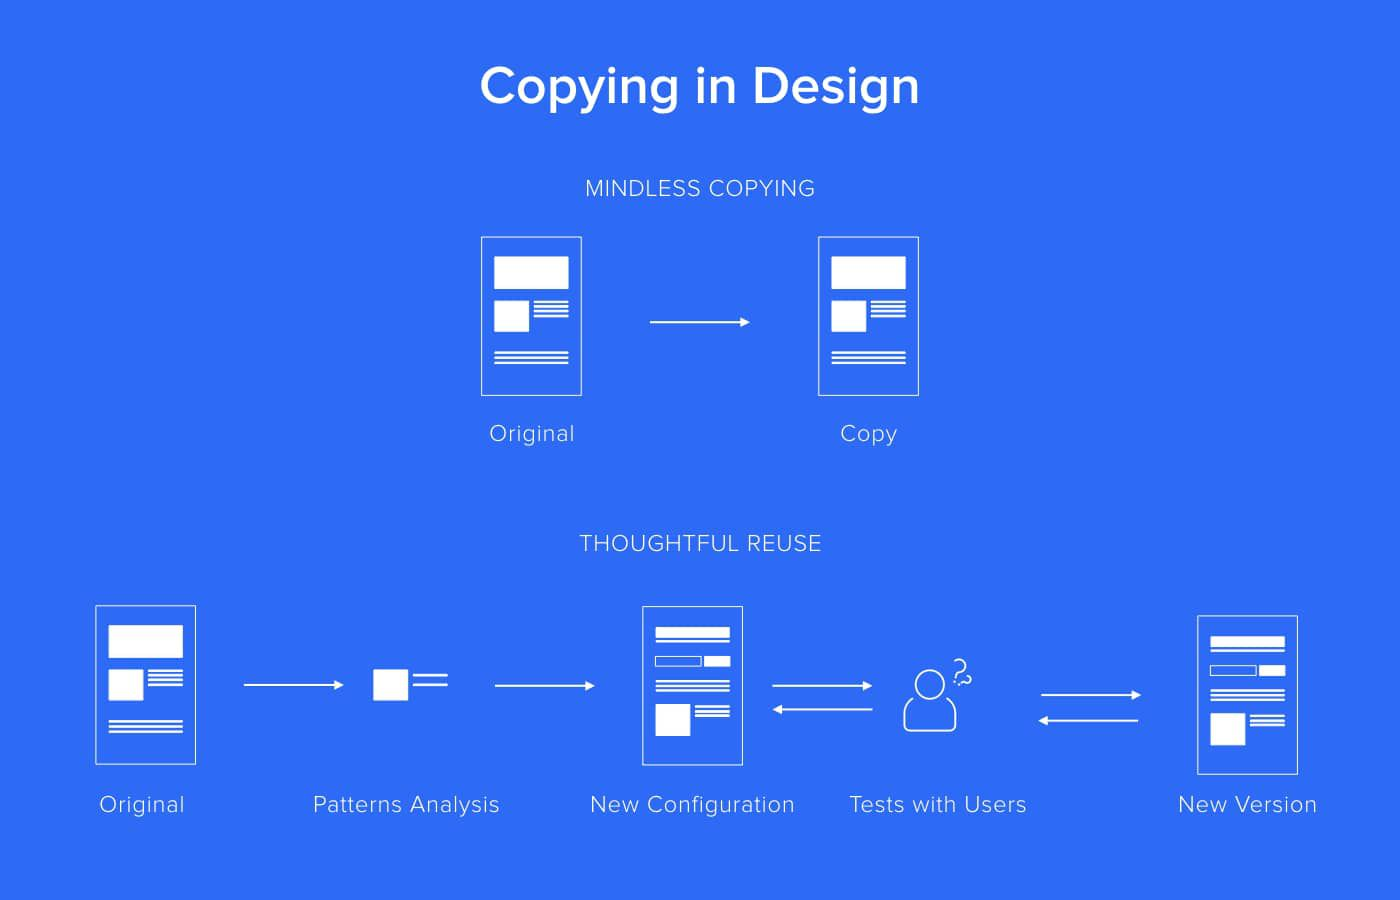 Two types of copying in design